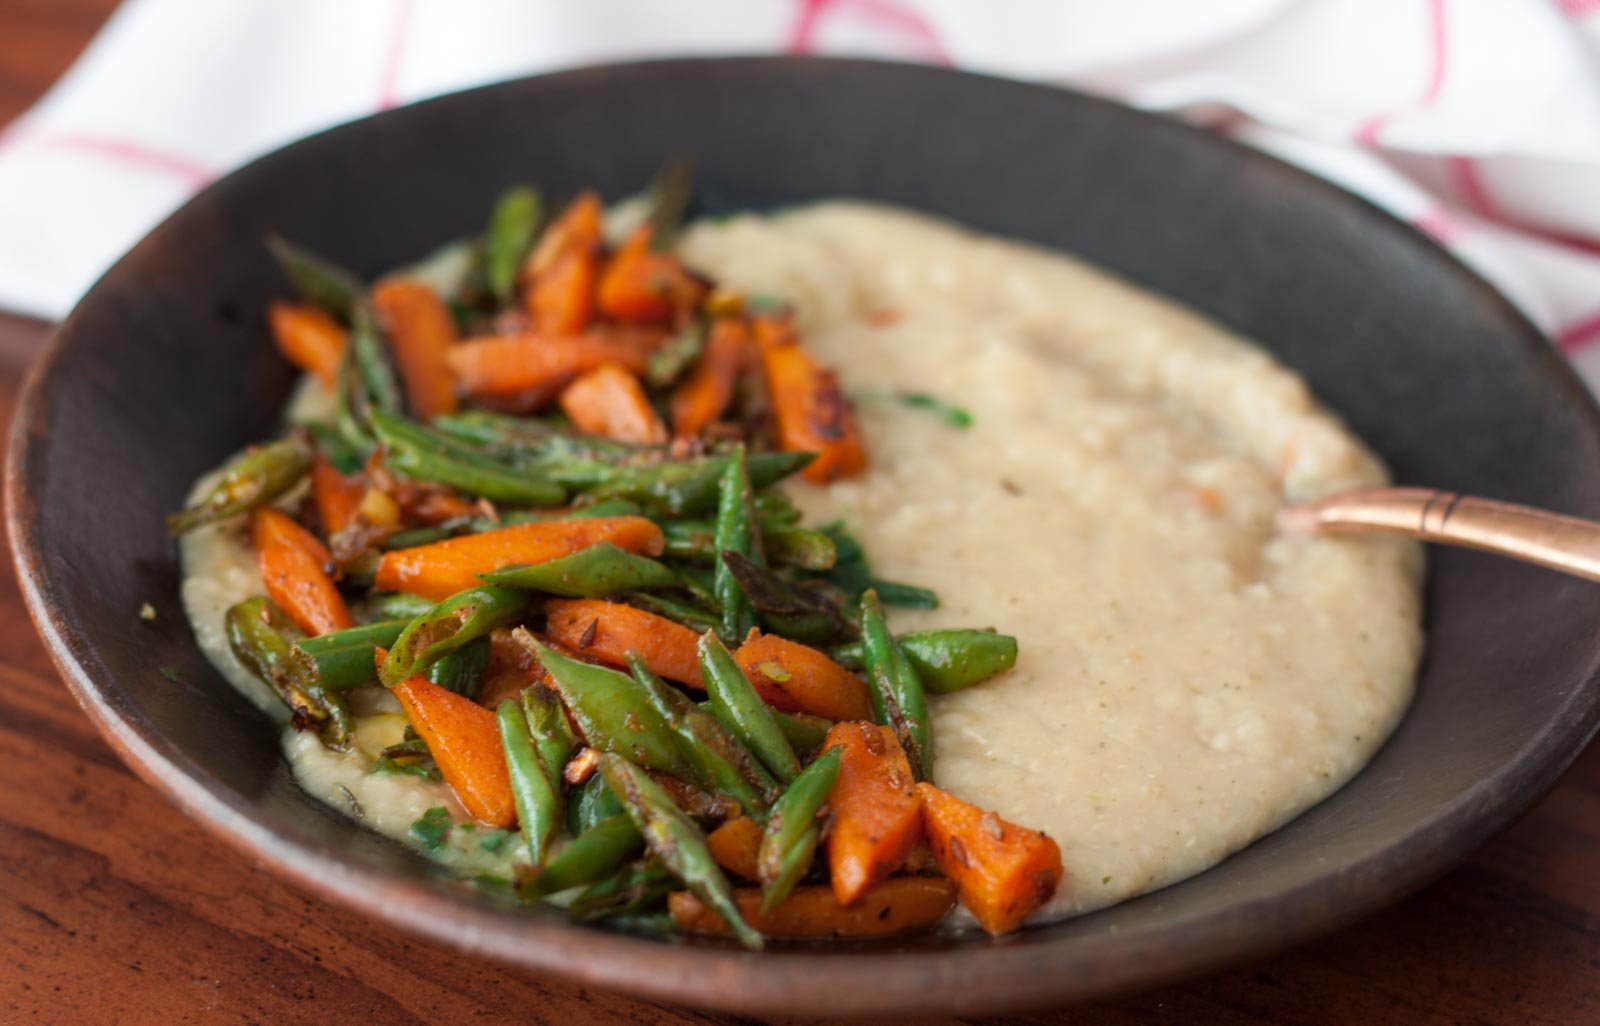 Savory Oatmeal Bowl with Sautéed Carrot and Green Bean Recipe